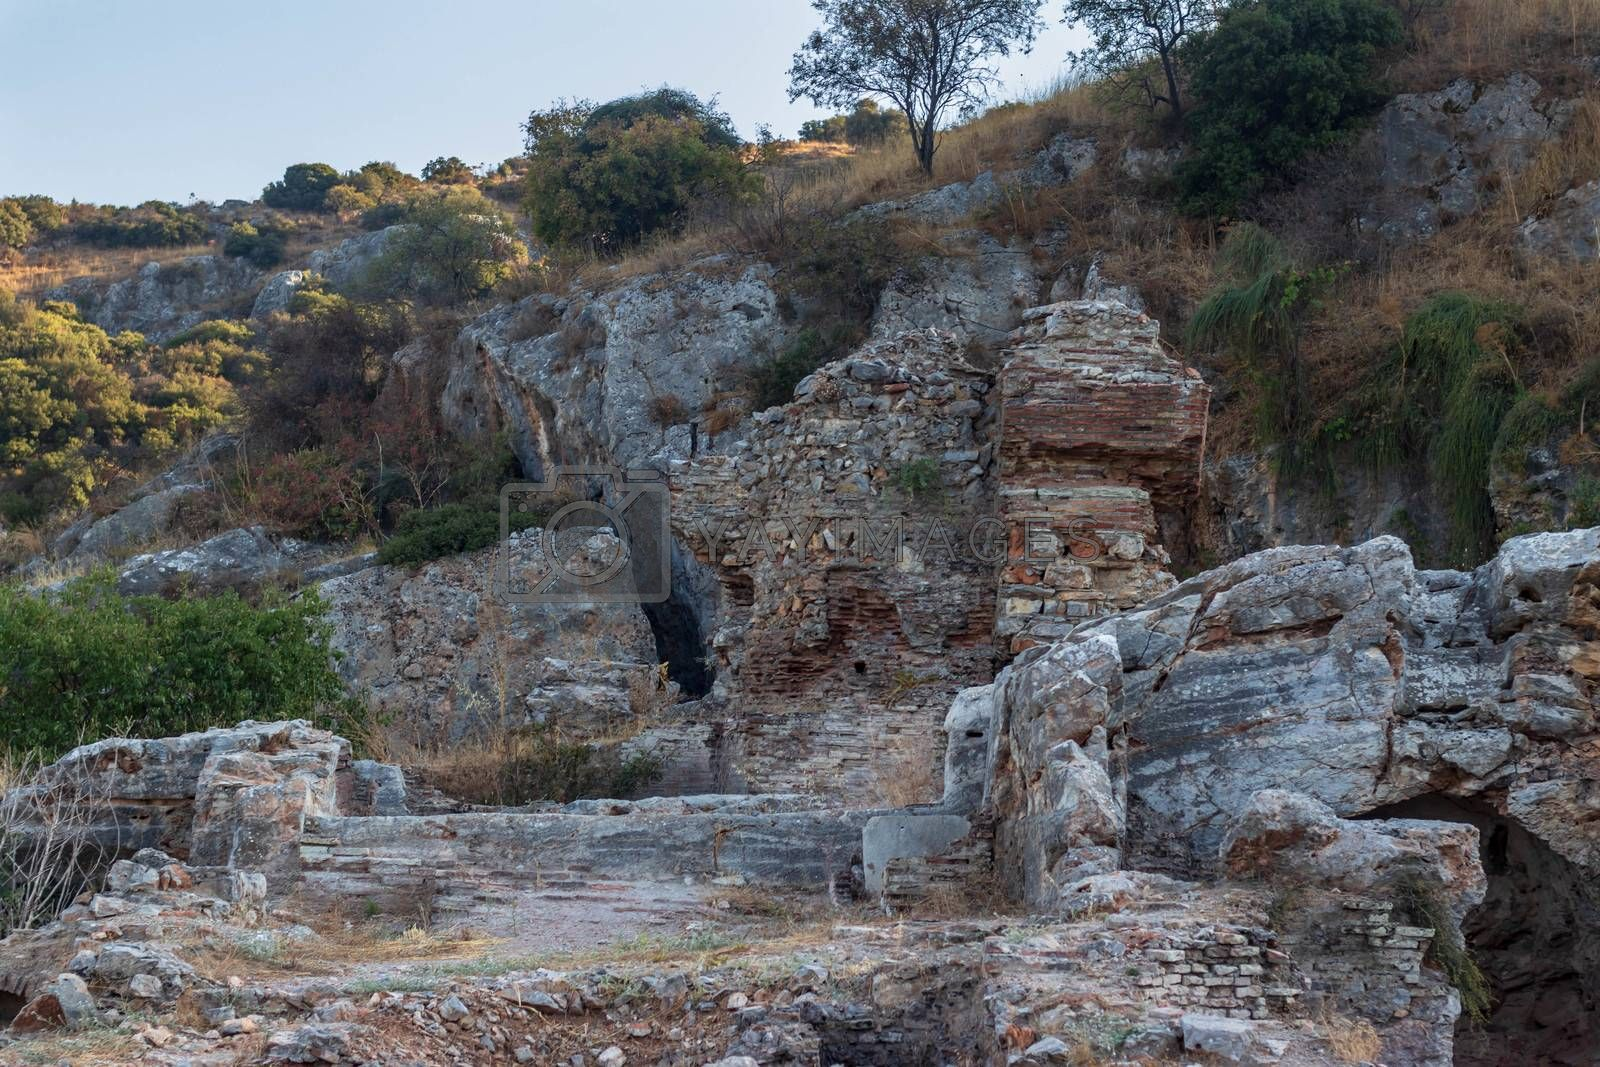 some ancient walls and stone structures at ancient city efes. photo has taken at izmir/turkey.